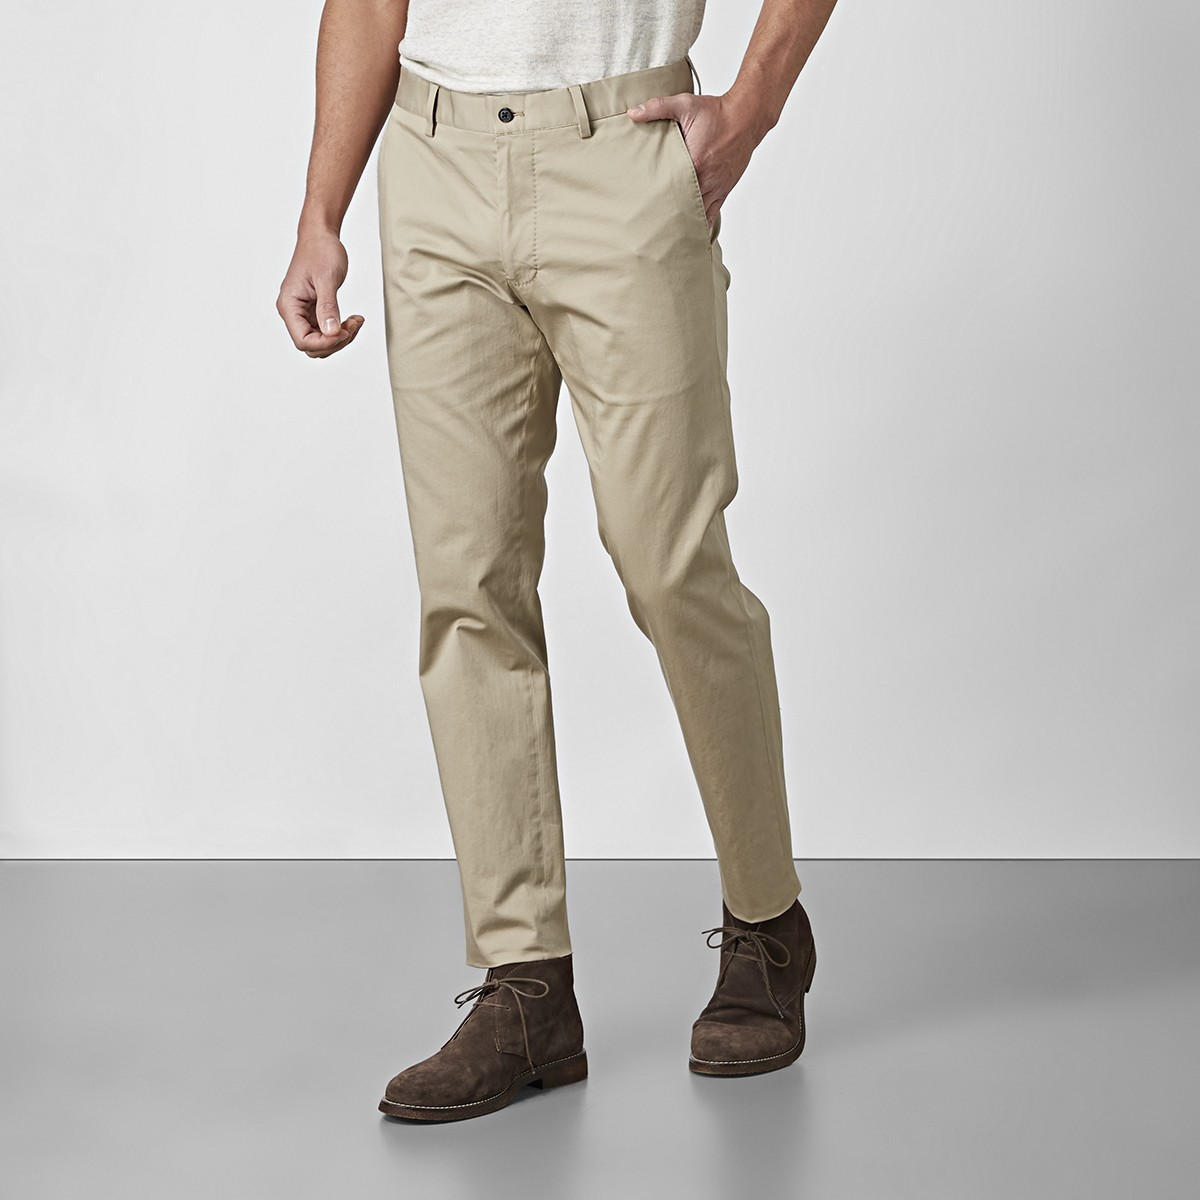 Stanton Byxor Beige | East West |Brothers.se